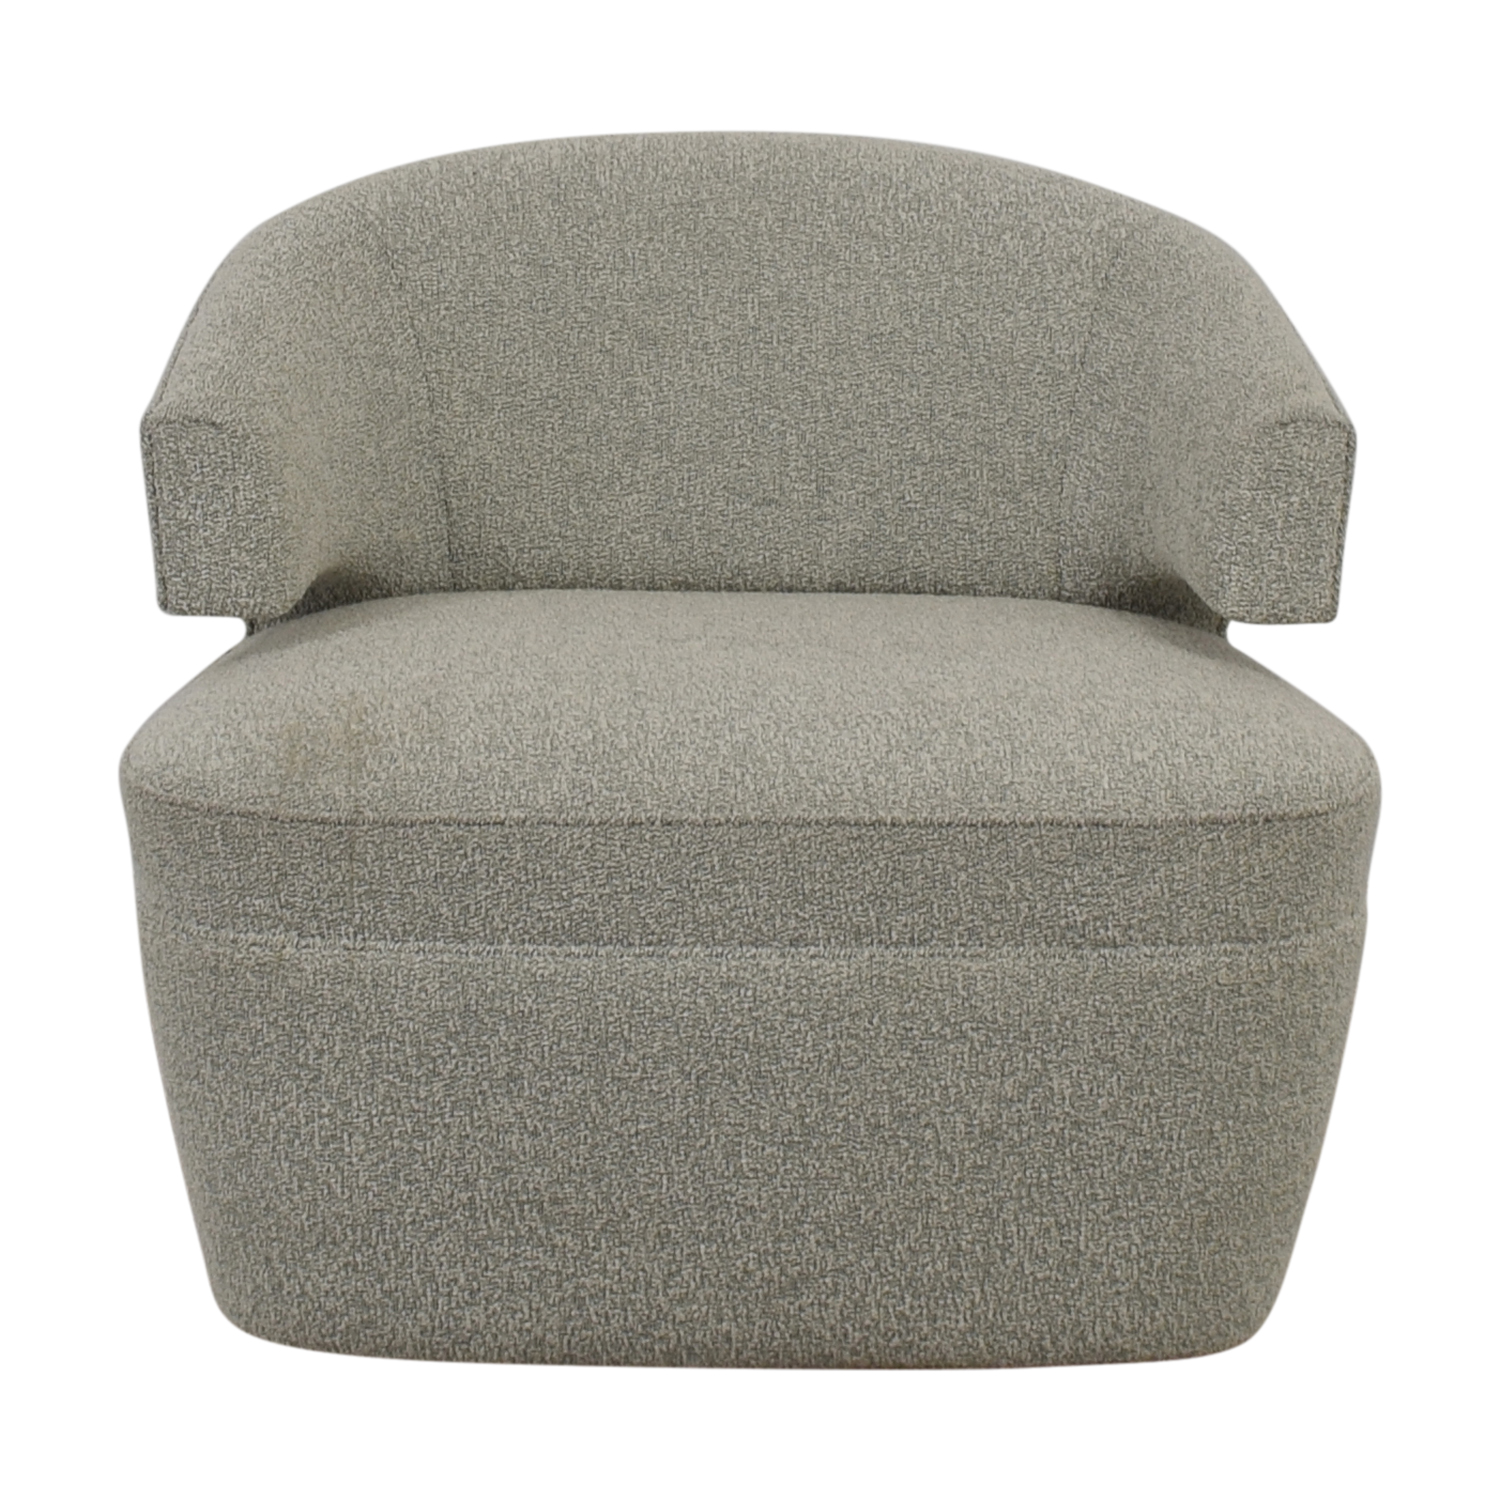 Furniture Masters Furniture Masters Grey Club Chair nj